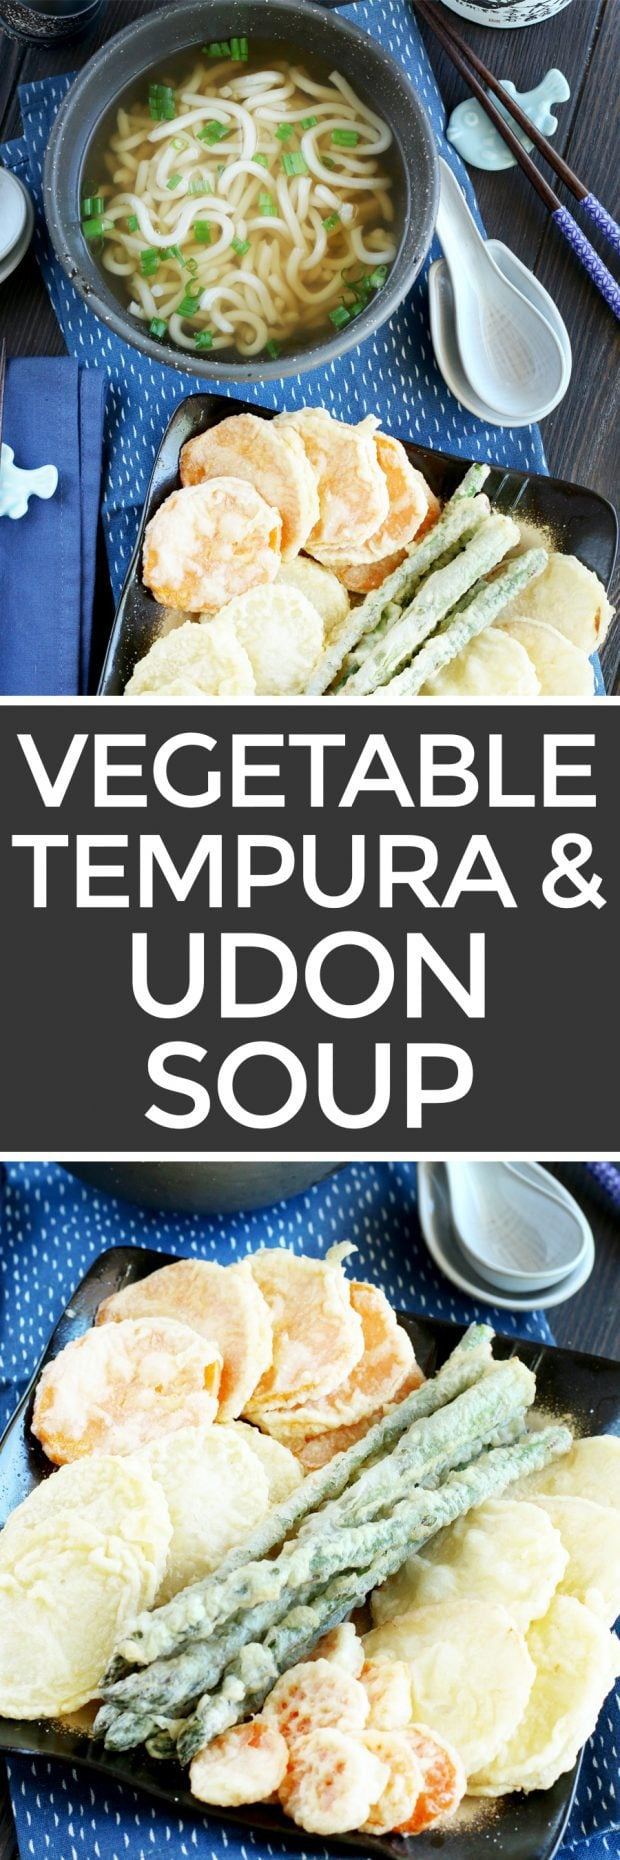 Vegetable Tempura Udon Soup